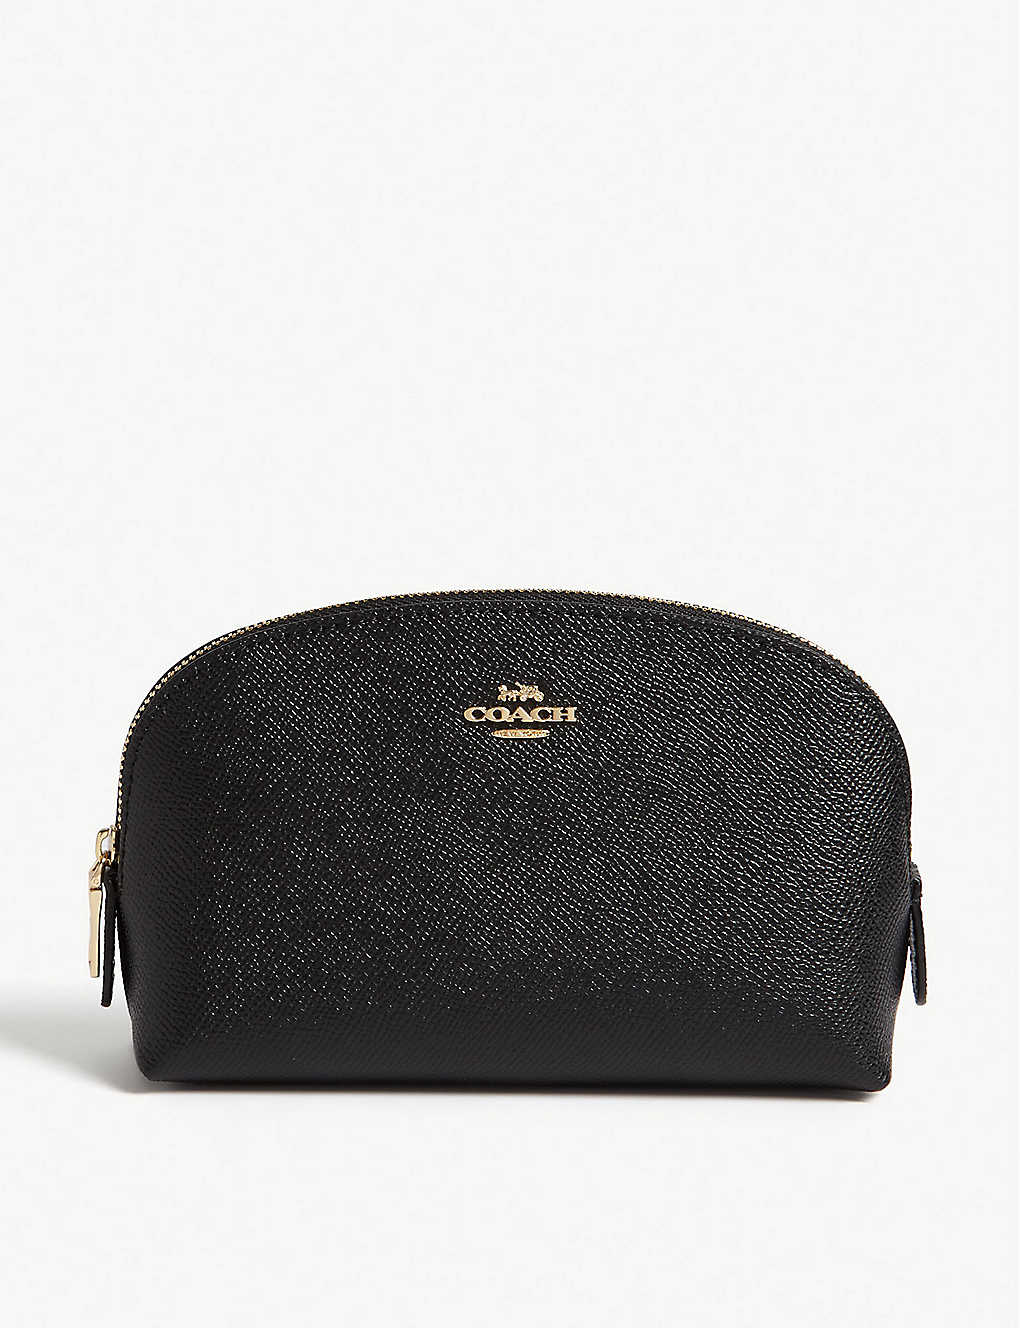 COACH: Grained leather cosmetics case